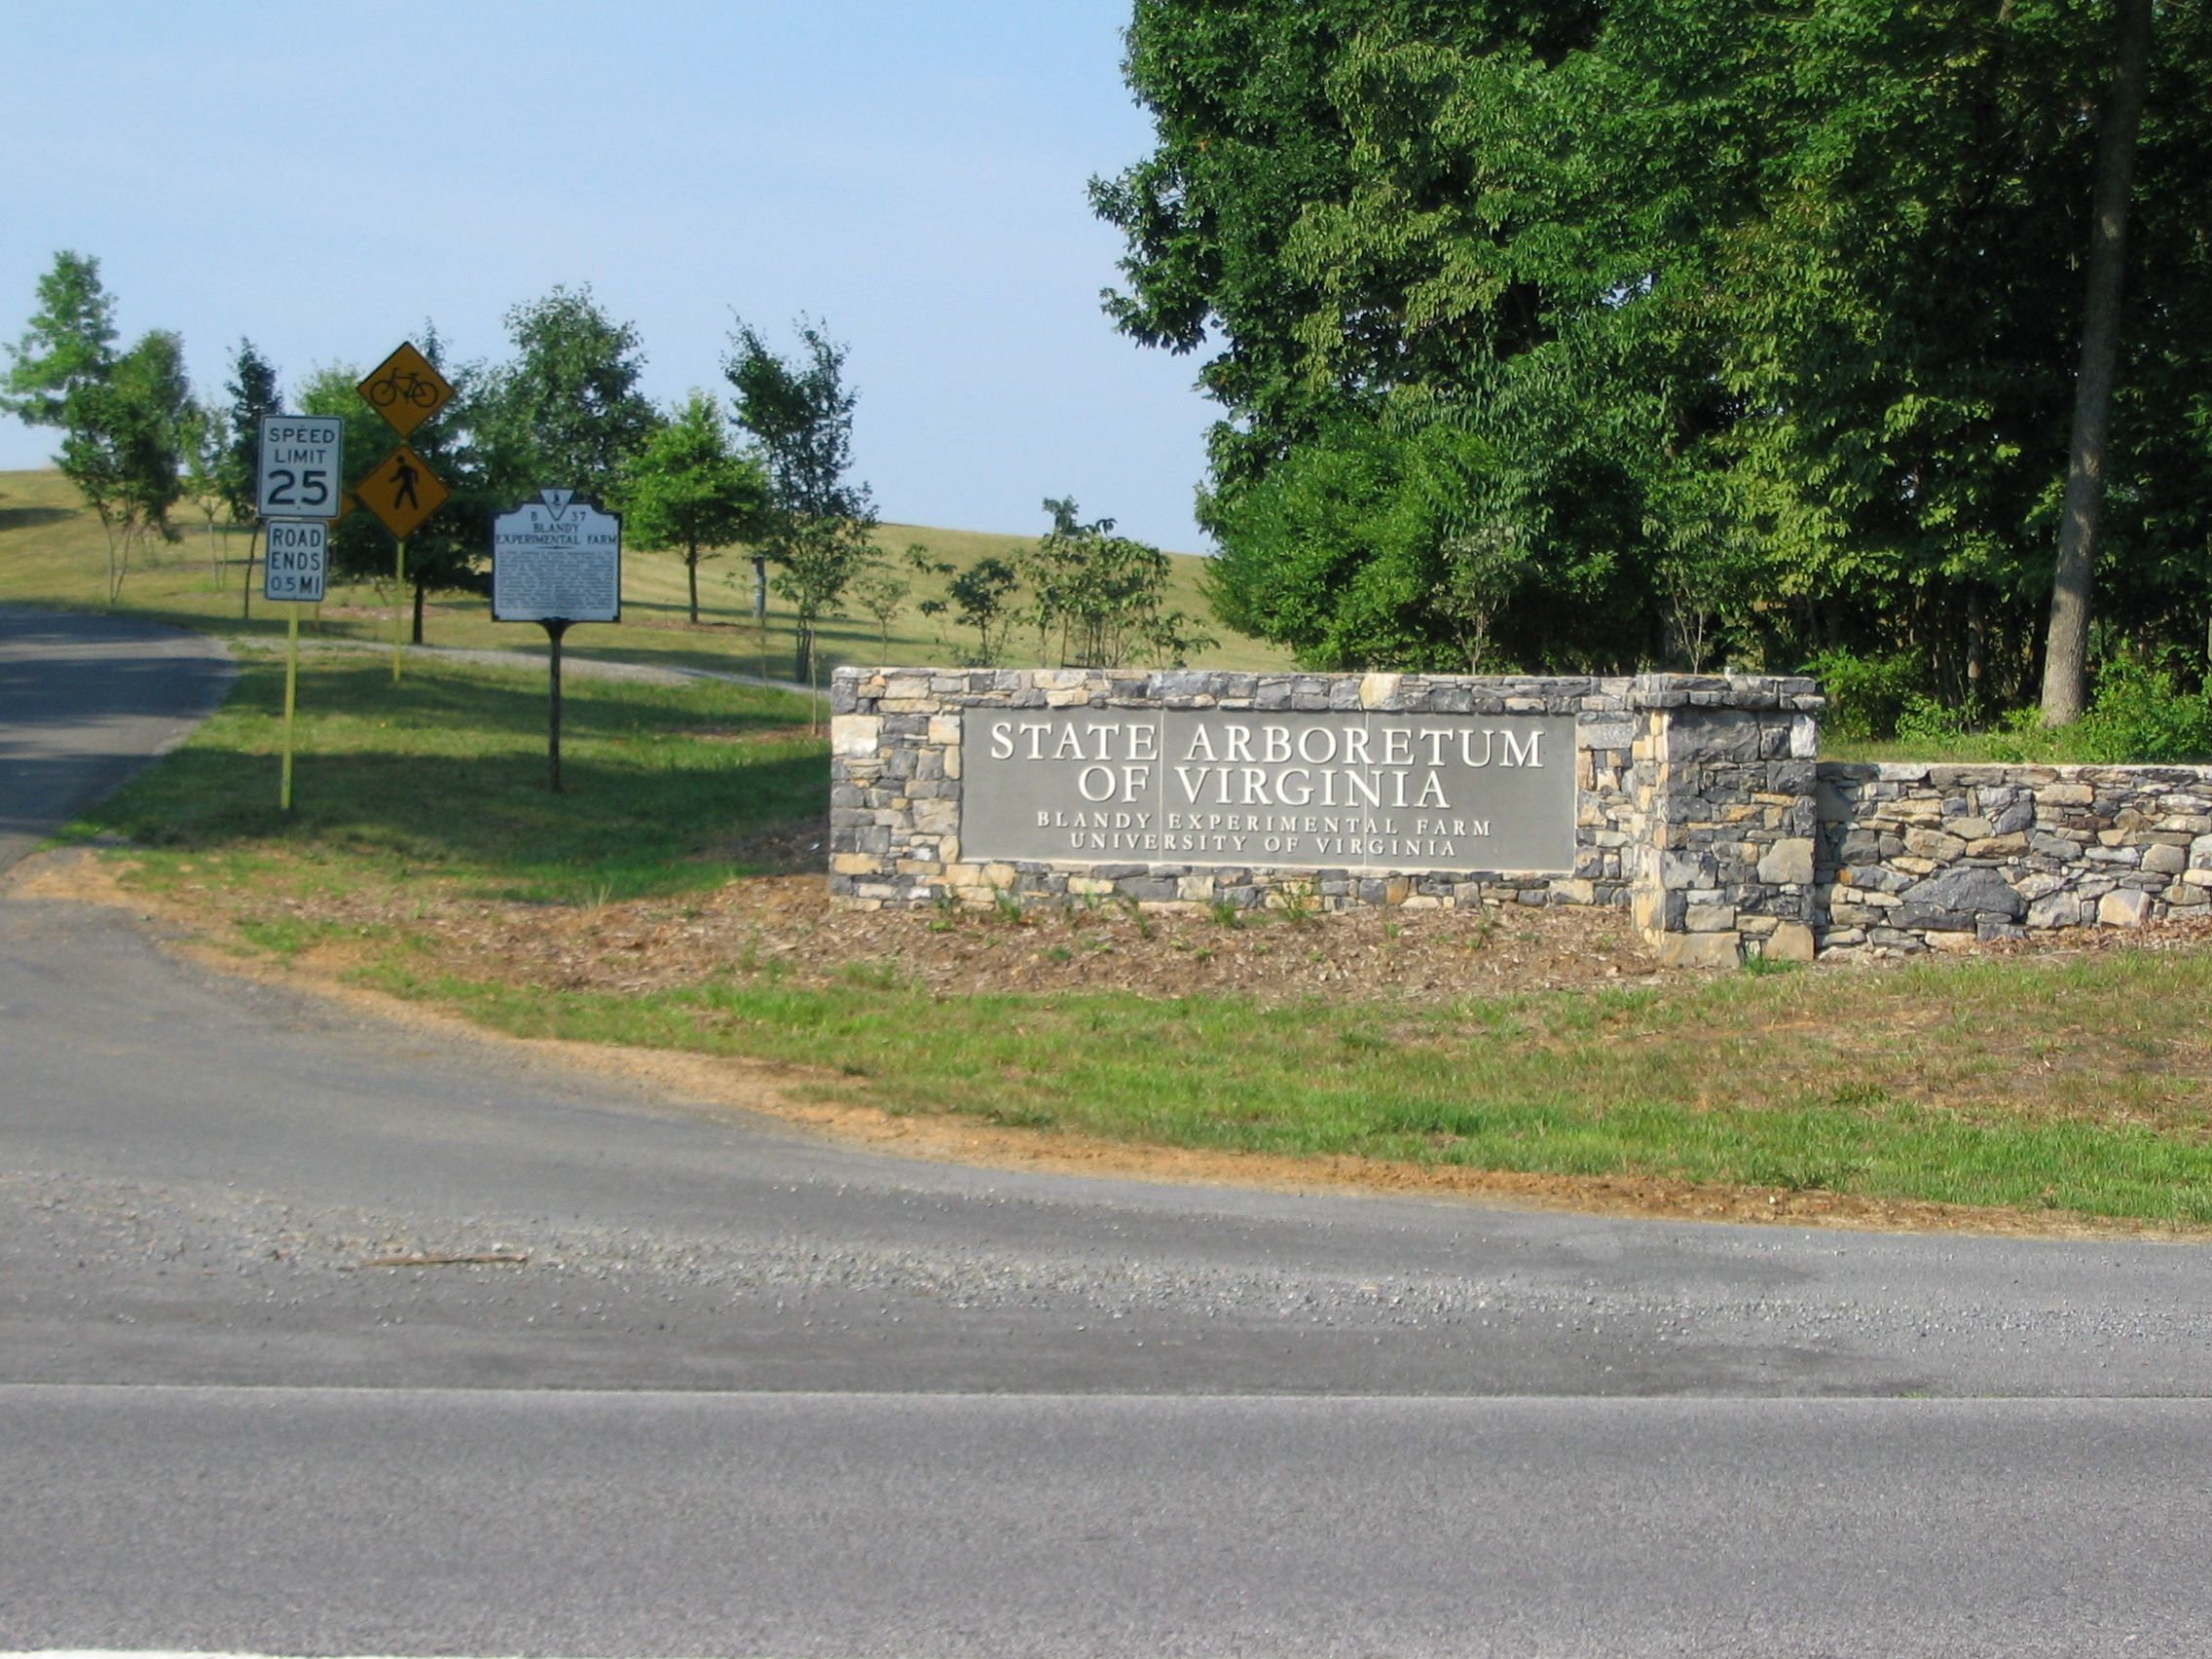 Entrance to the State Arboretum